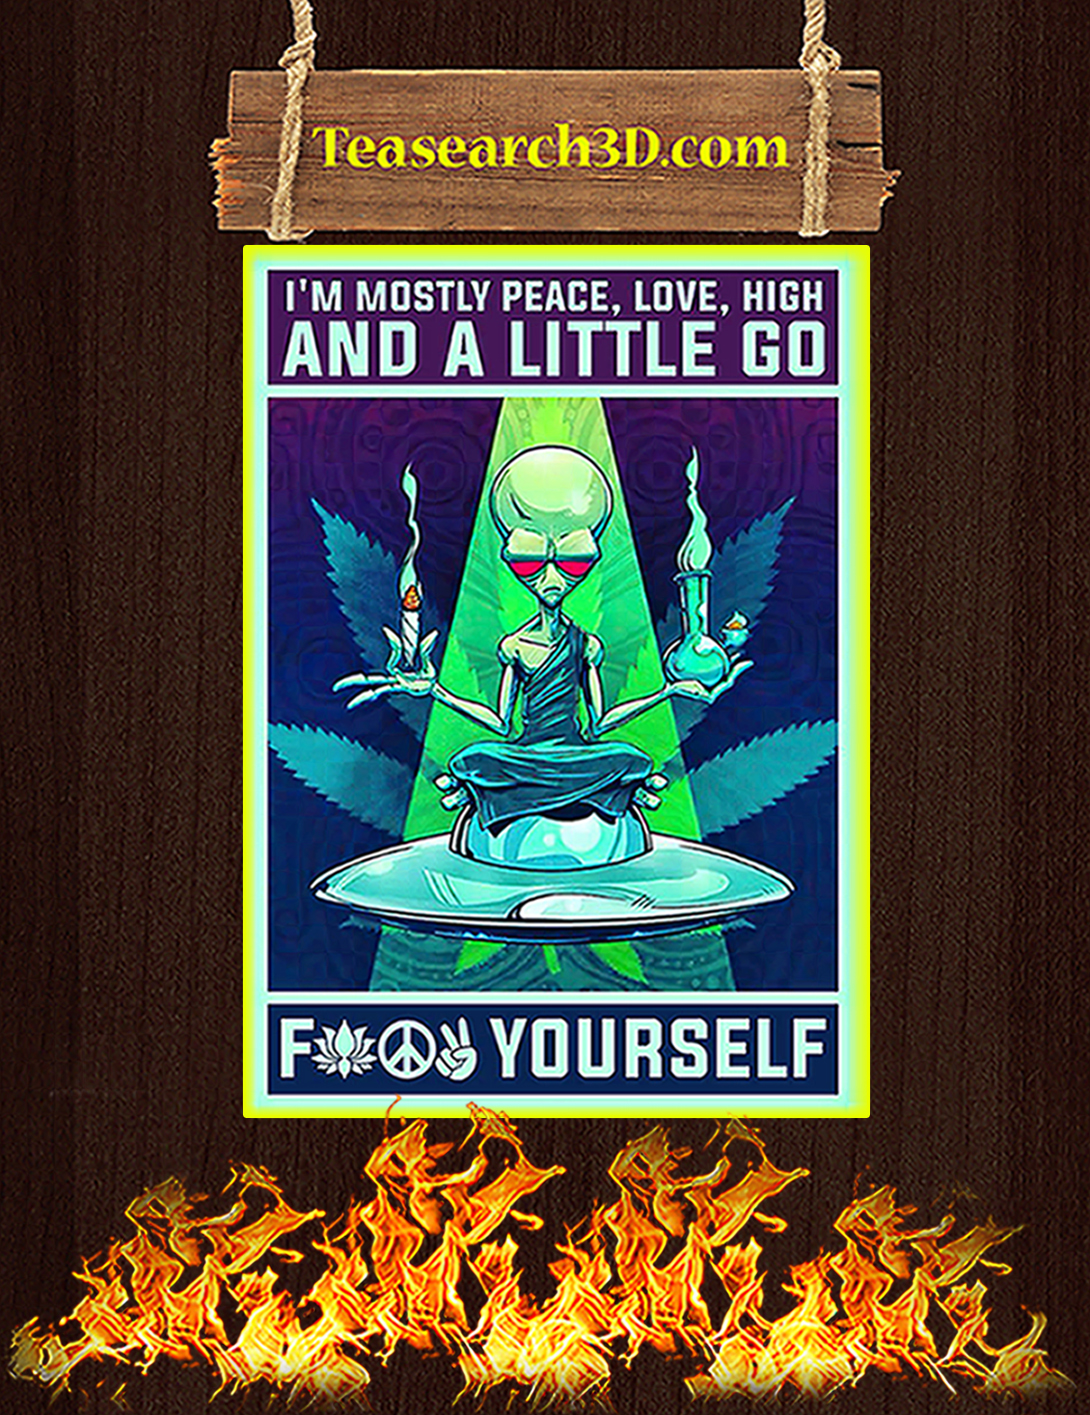 Alien yoga I'm mostly peace love high and a little go fuck yourself poster A2